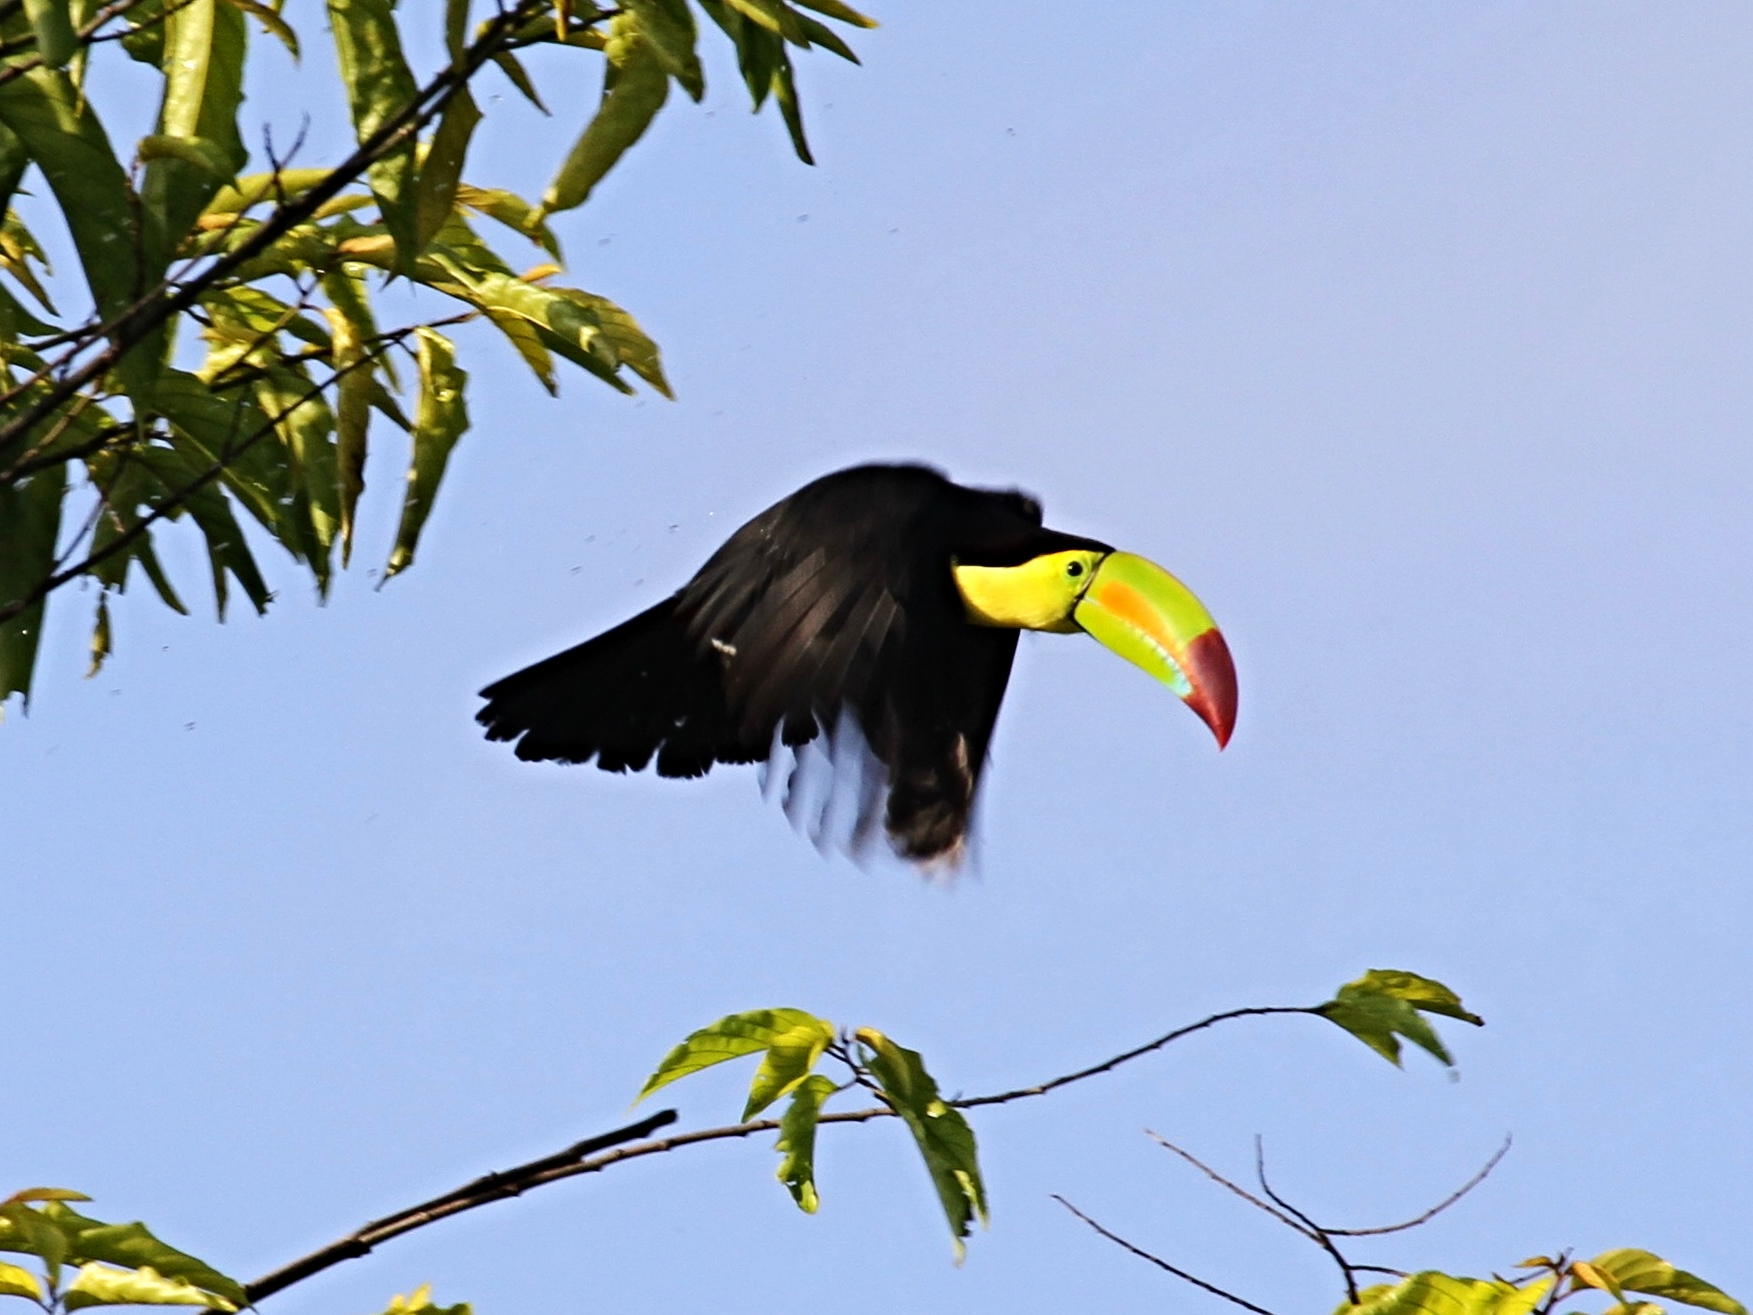 A Keel-Billed Toucan soars through the trees in the morning light